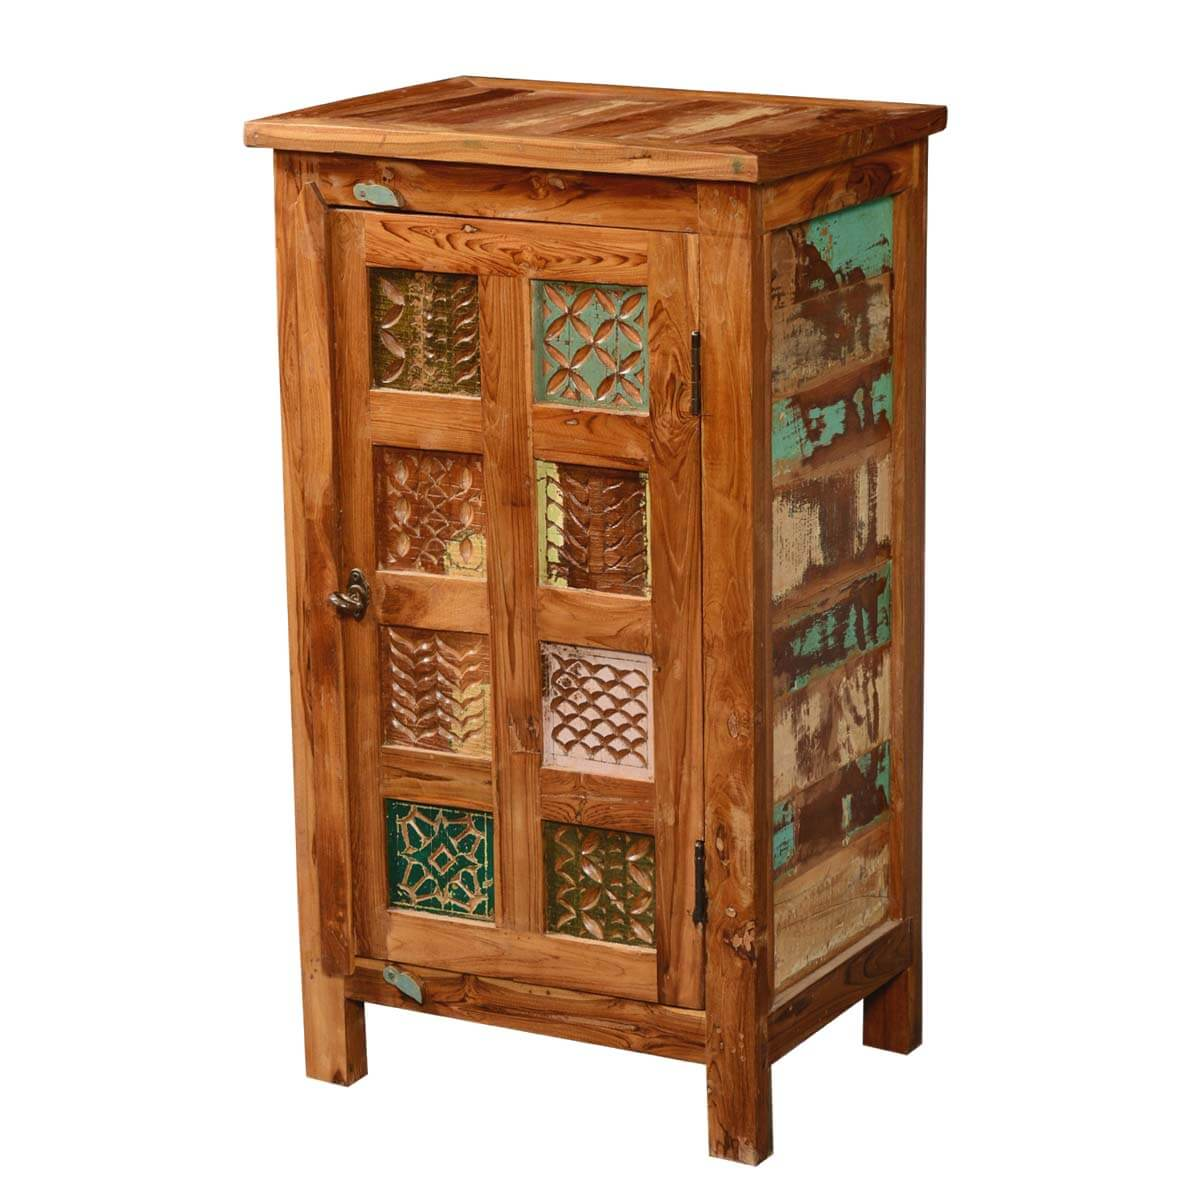 Appalachian Patch Quilt Freestanding Kitchen Cupboard Cabinet